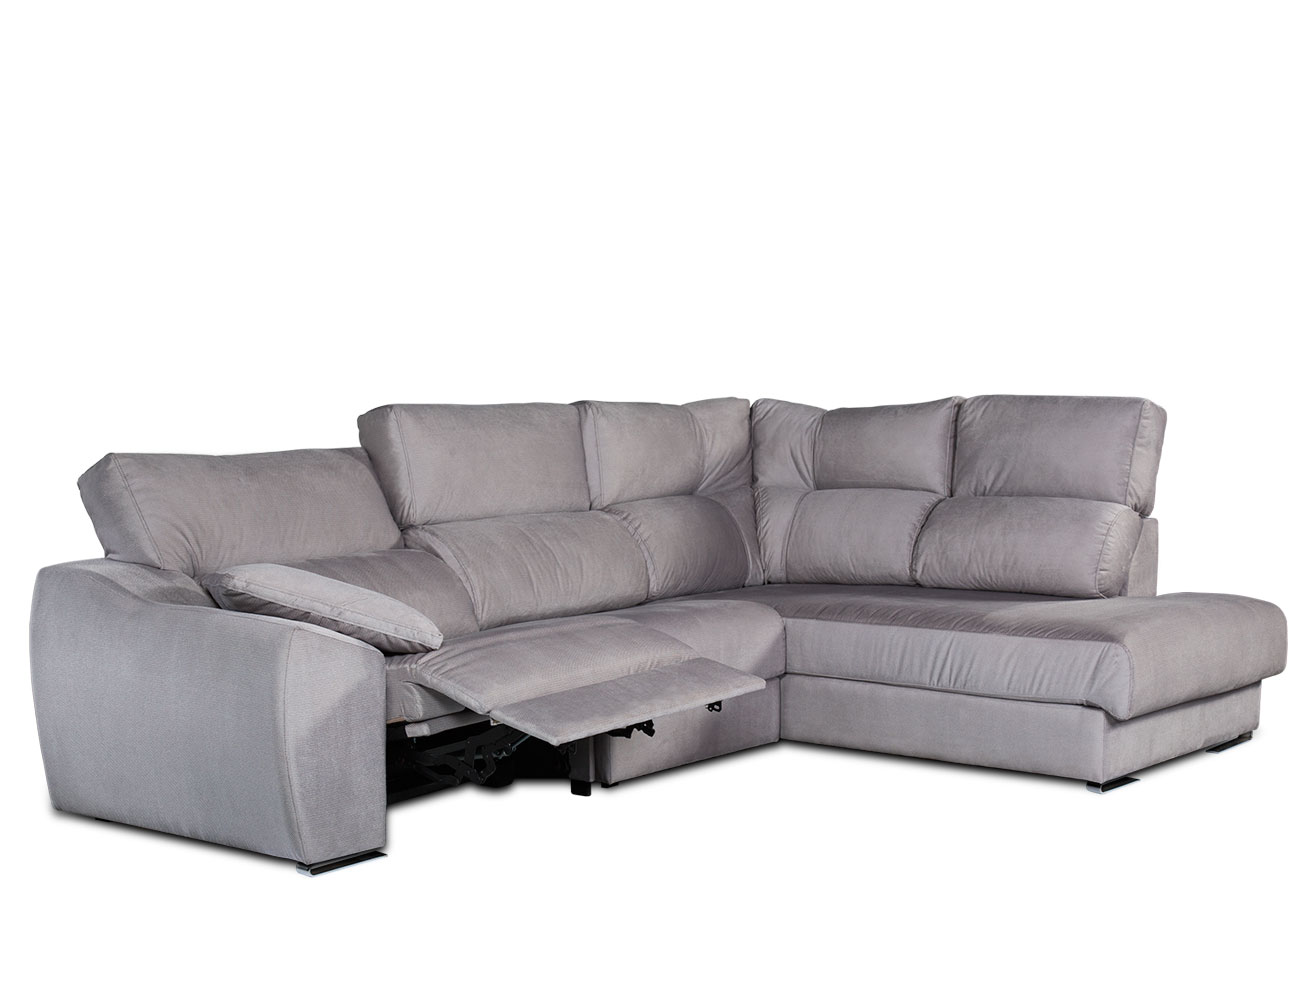 Sofa chaiselongue rincon electrico 27